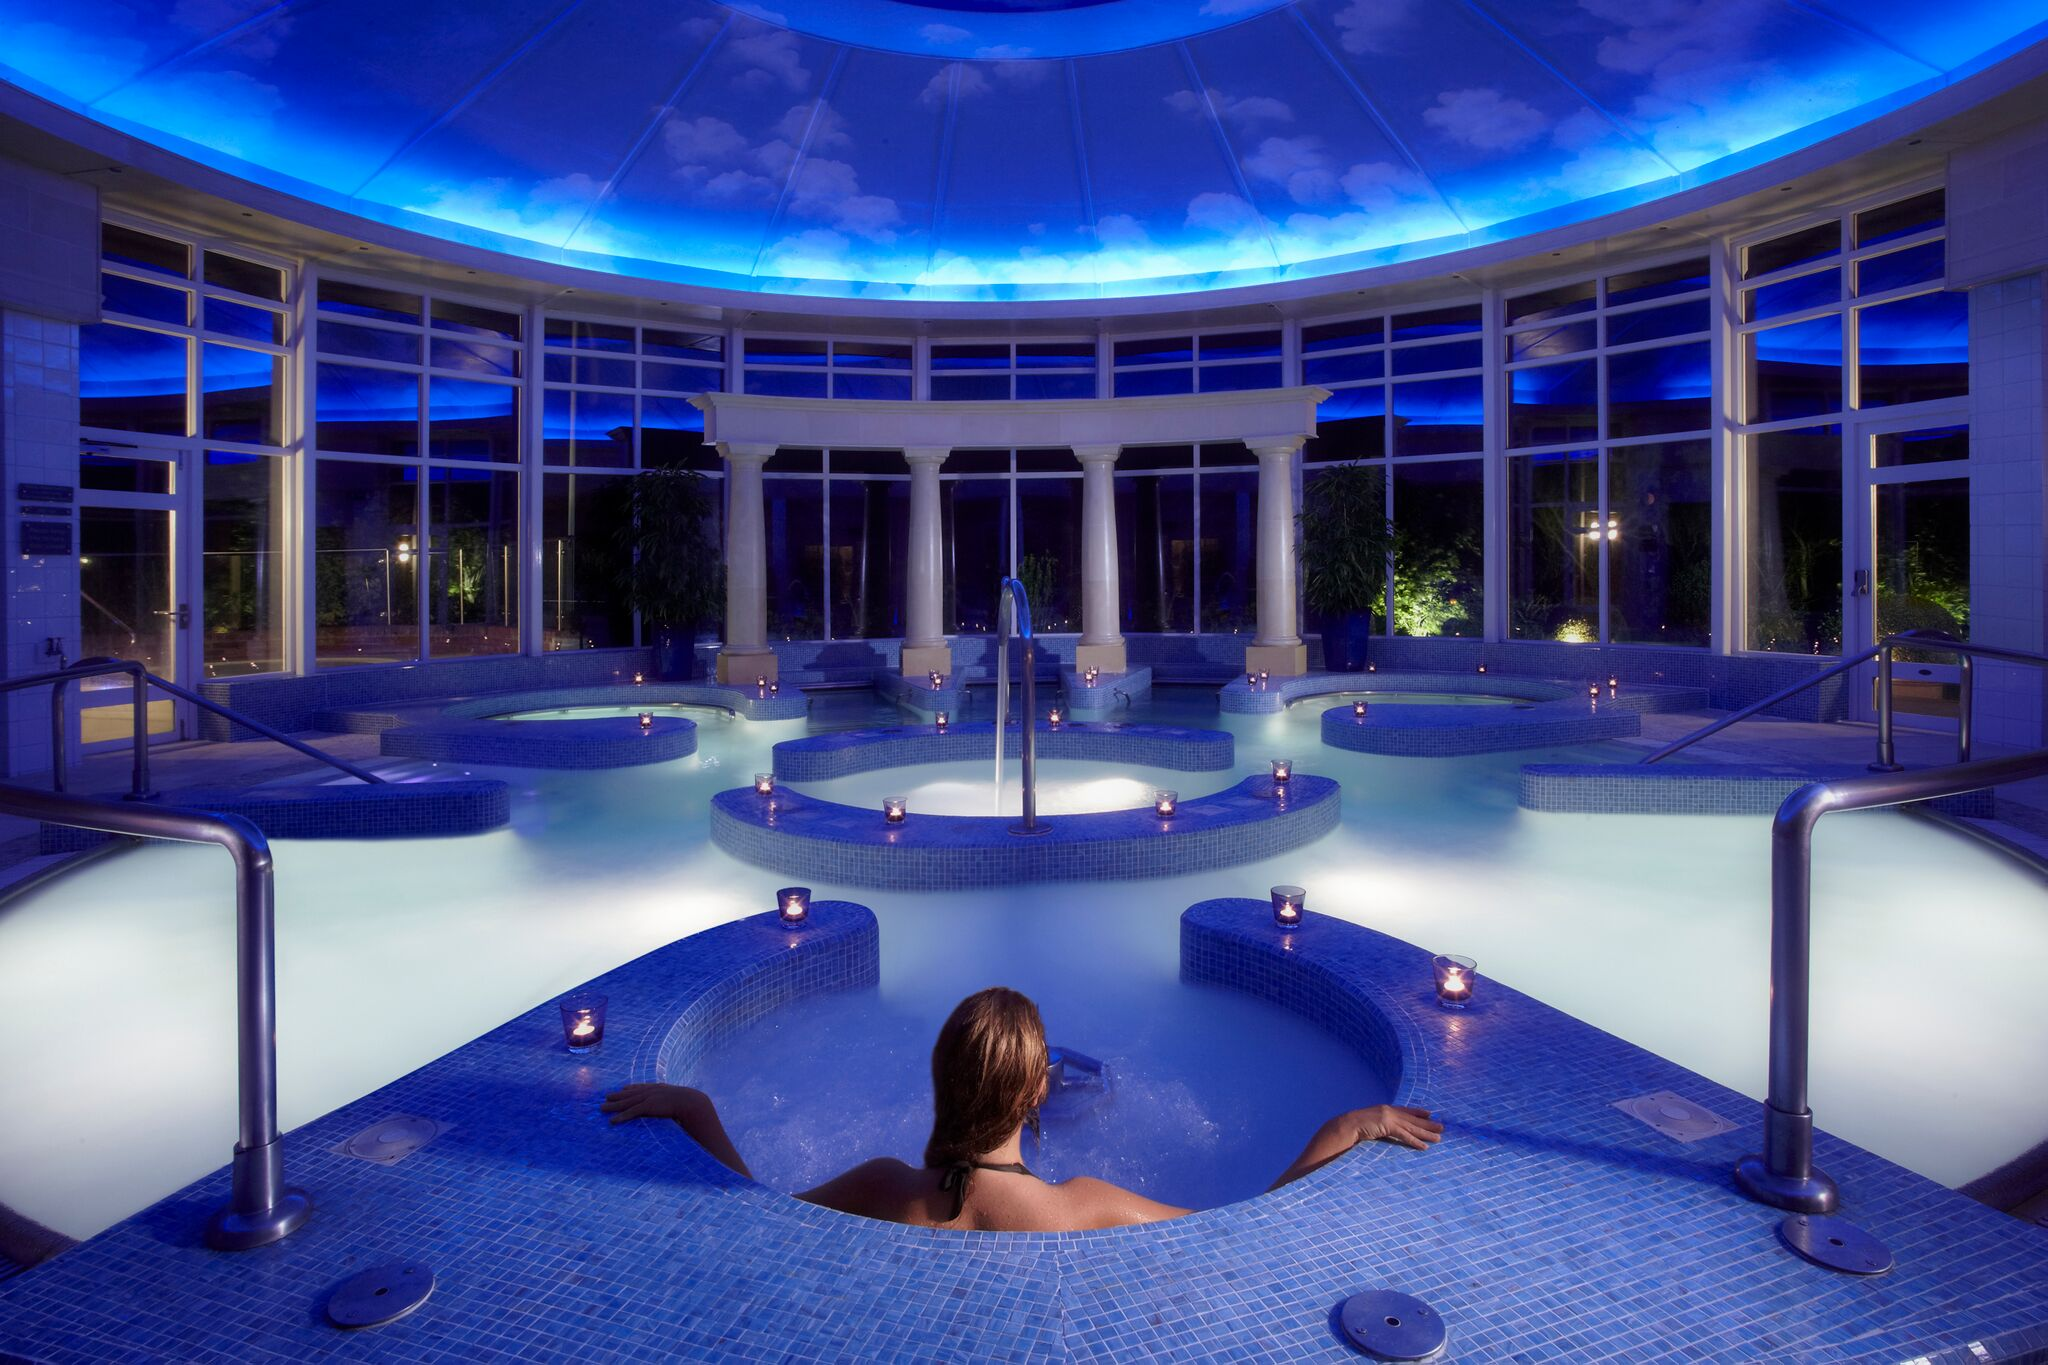 Spa - Hydrotherapy Pool CG (4)_preview-1.jpg